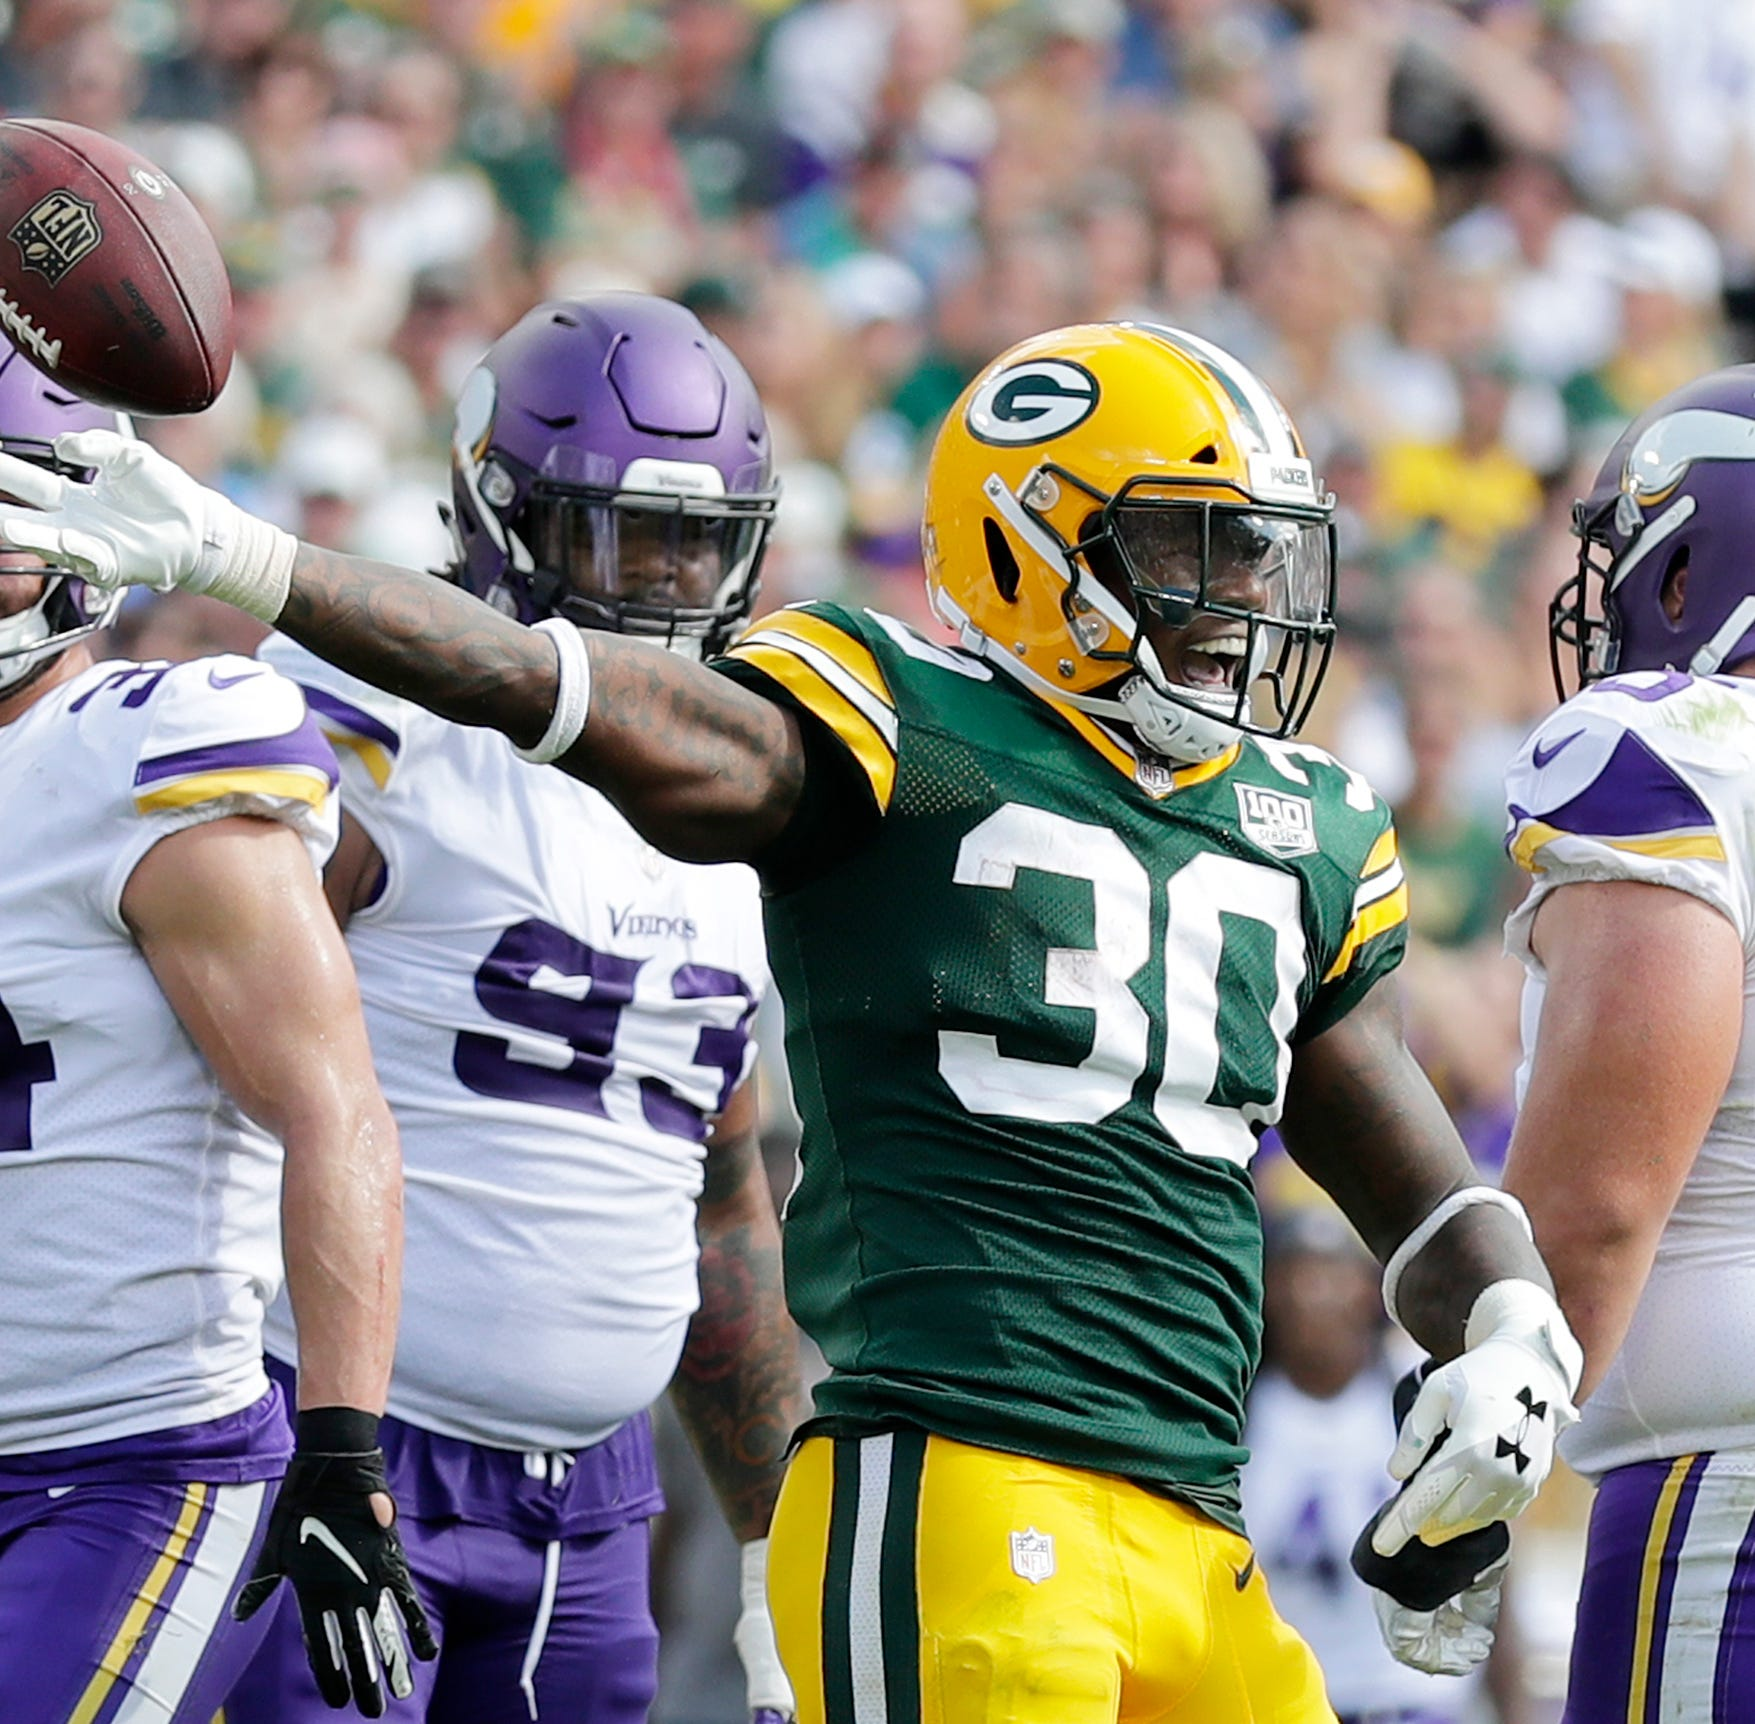 Packers to host Vikings in home opener, have max number of primetime games